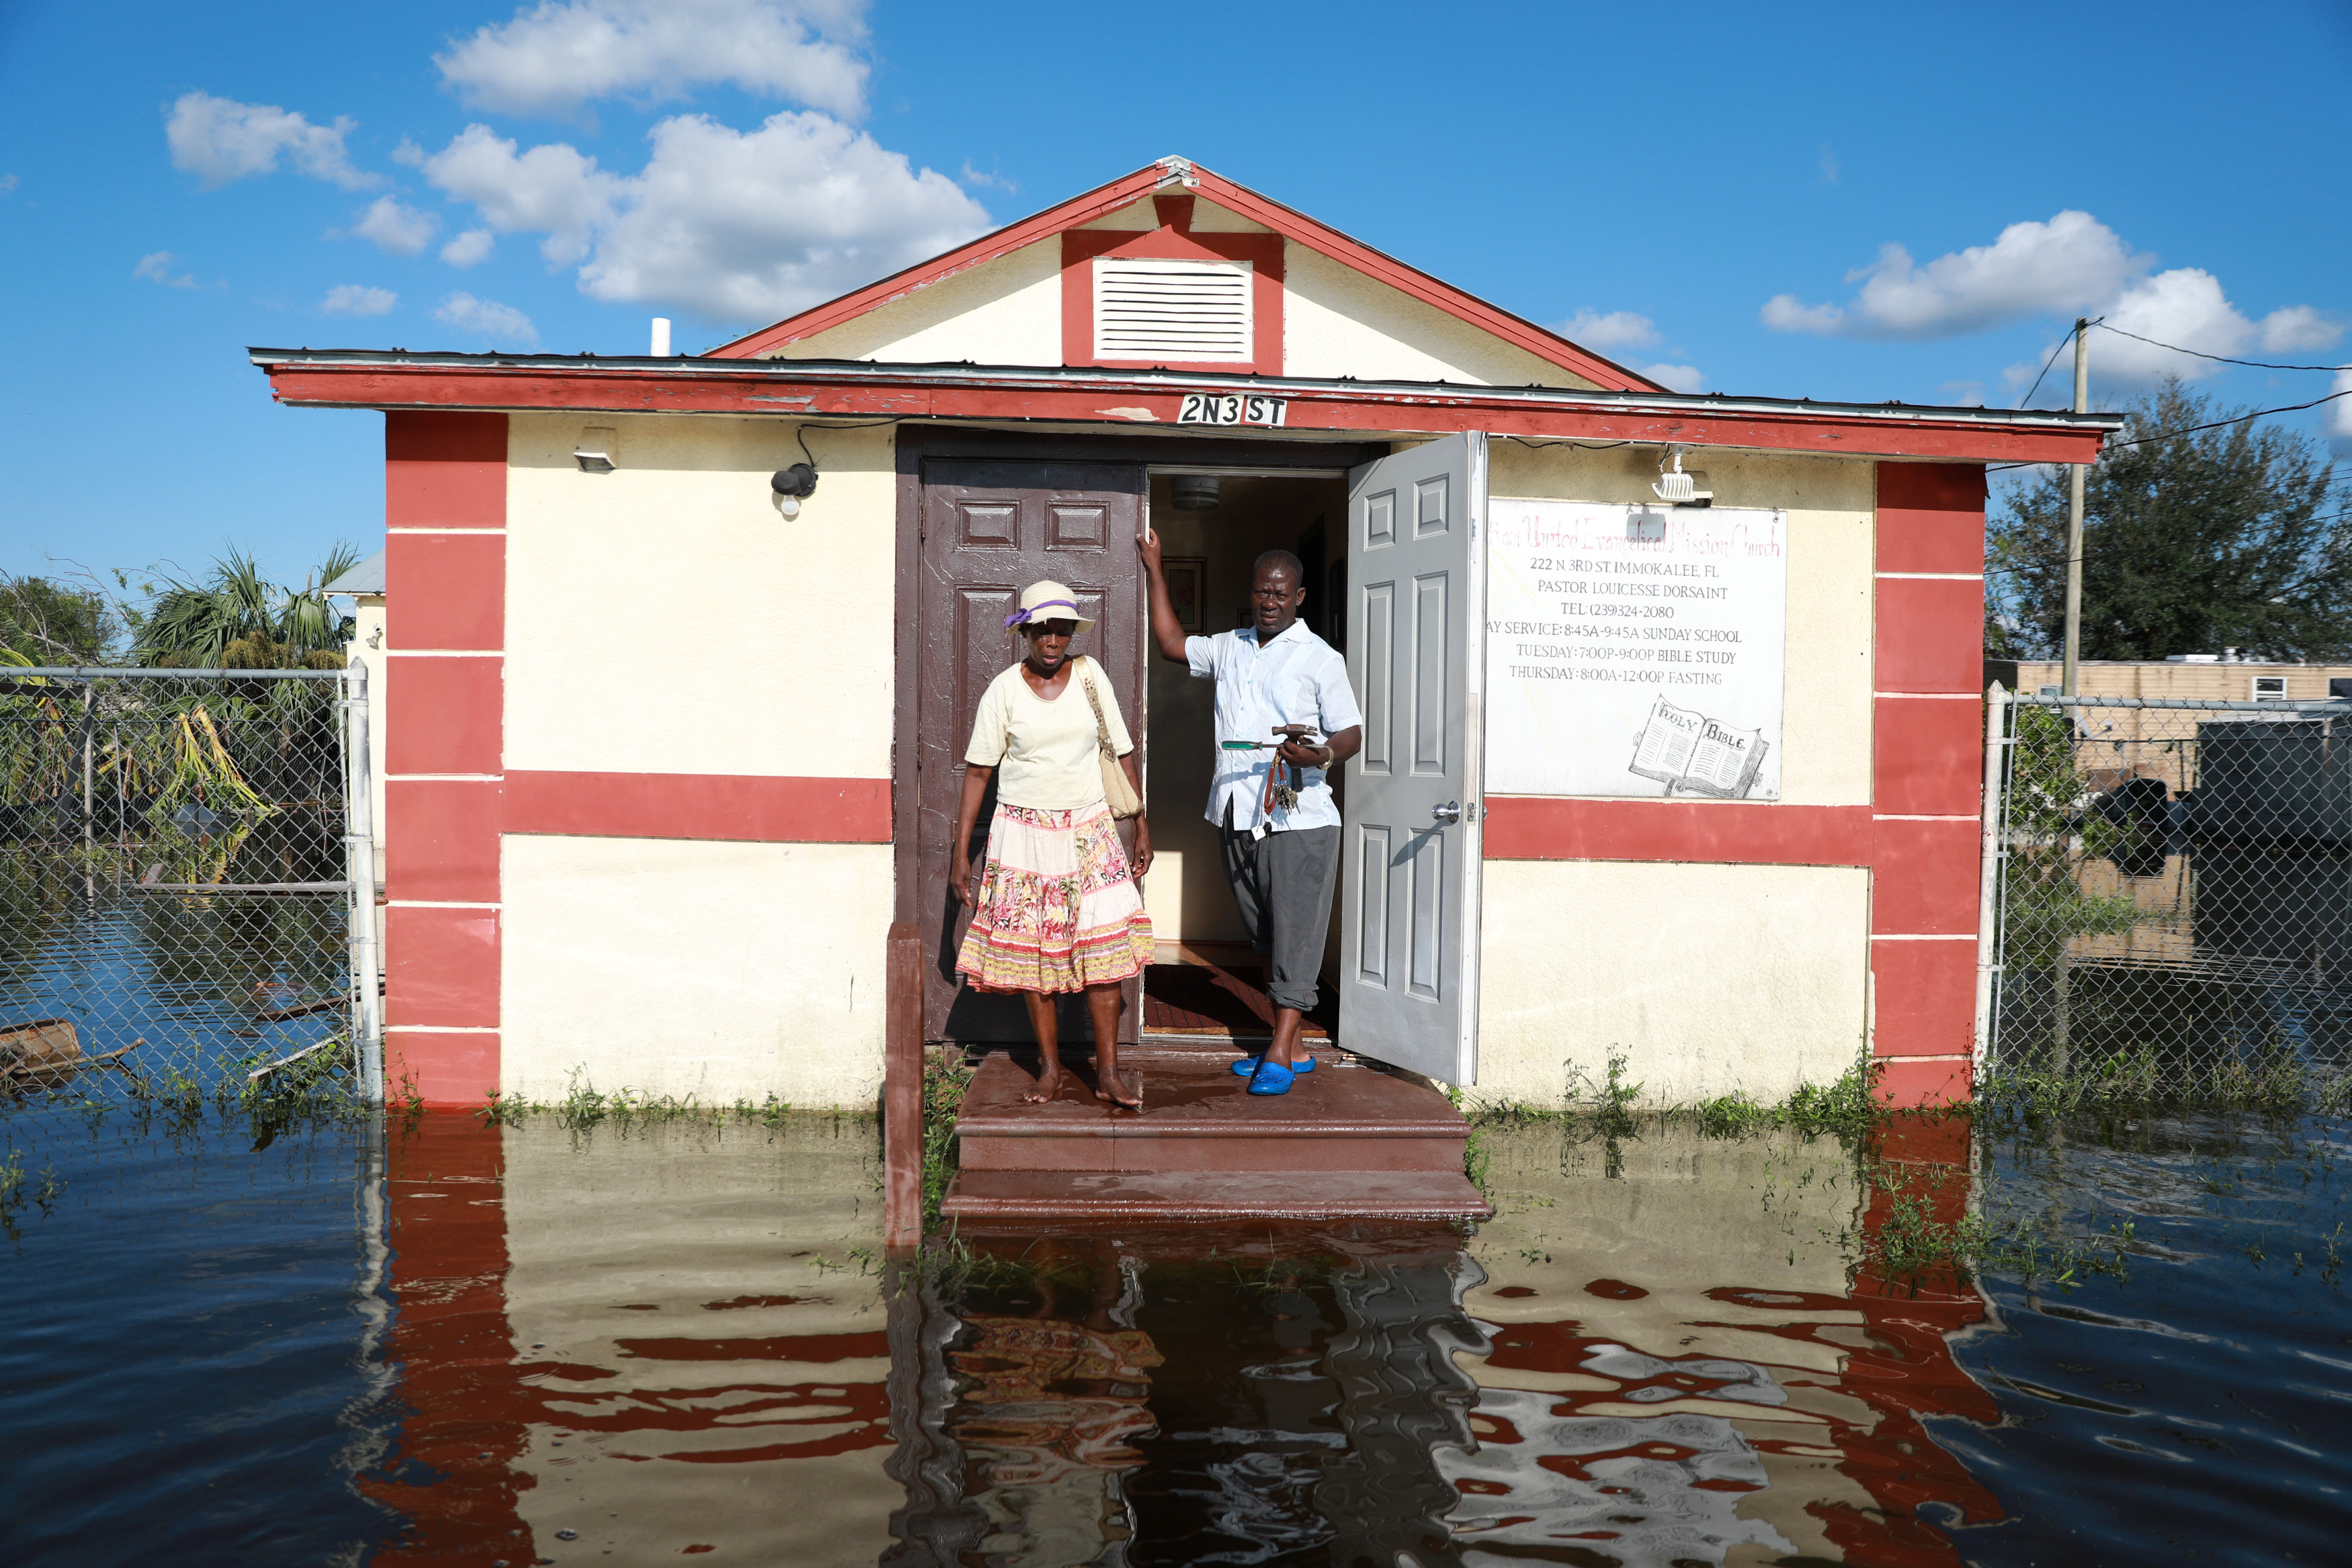 Pastor Louicesse Dorsaint stands with his wife Maria Dorsaint in front of their church, Haitian United Evangelical Mission, which was damaged by flooding from Hurricane Irma in Immokalee, Florida on Sept. 12, 2017. (Reuters/Stephen Yang)